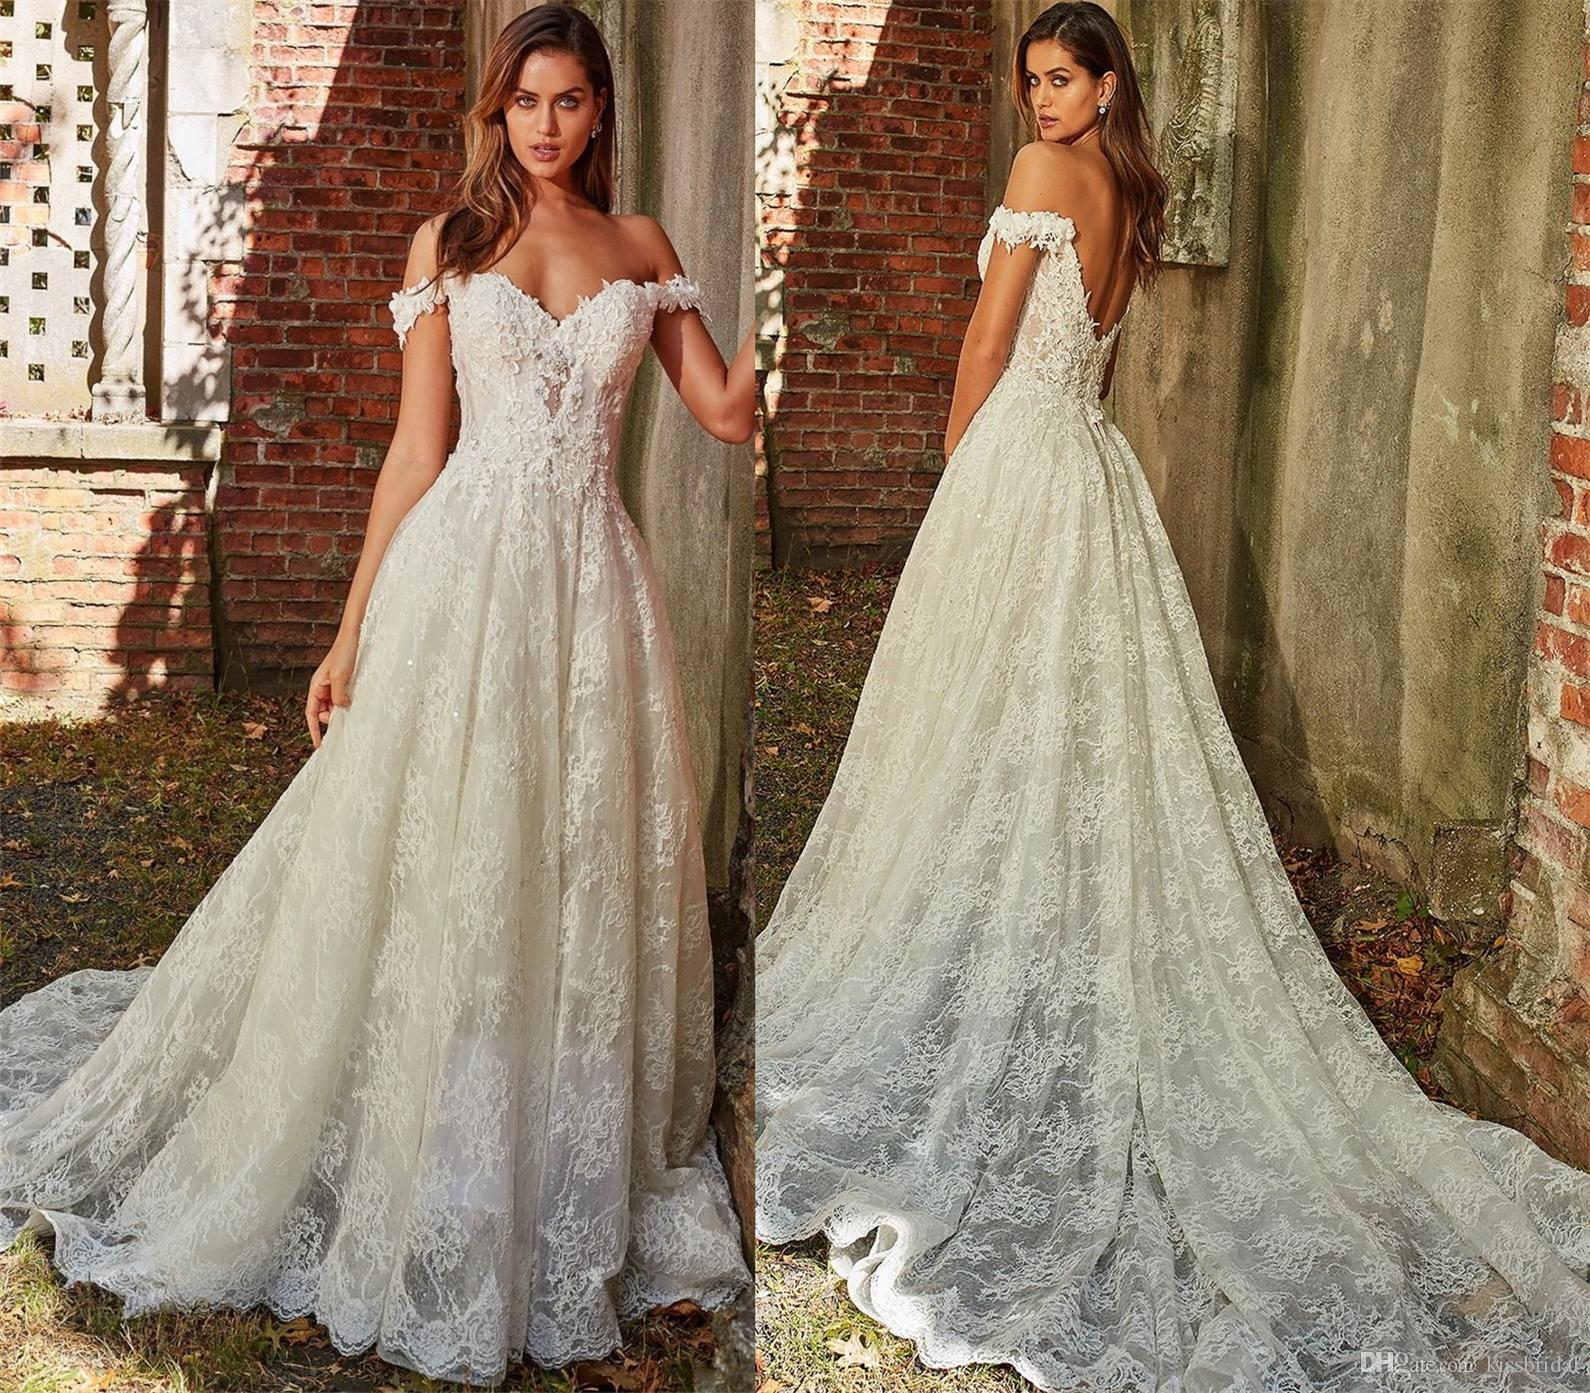 e4adc046711c Princess Off The Shoulder Lace Wedding Dresses 2019 Backless Bridal Formal Gowns  With Three Dimensional Flowers New Luxury Wedding Dress Black Wedding Dress  ...